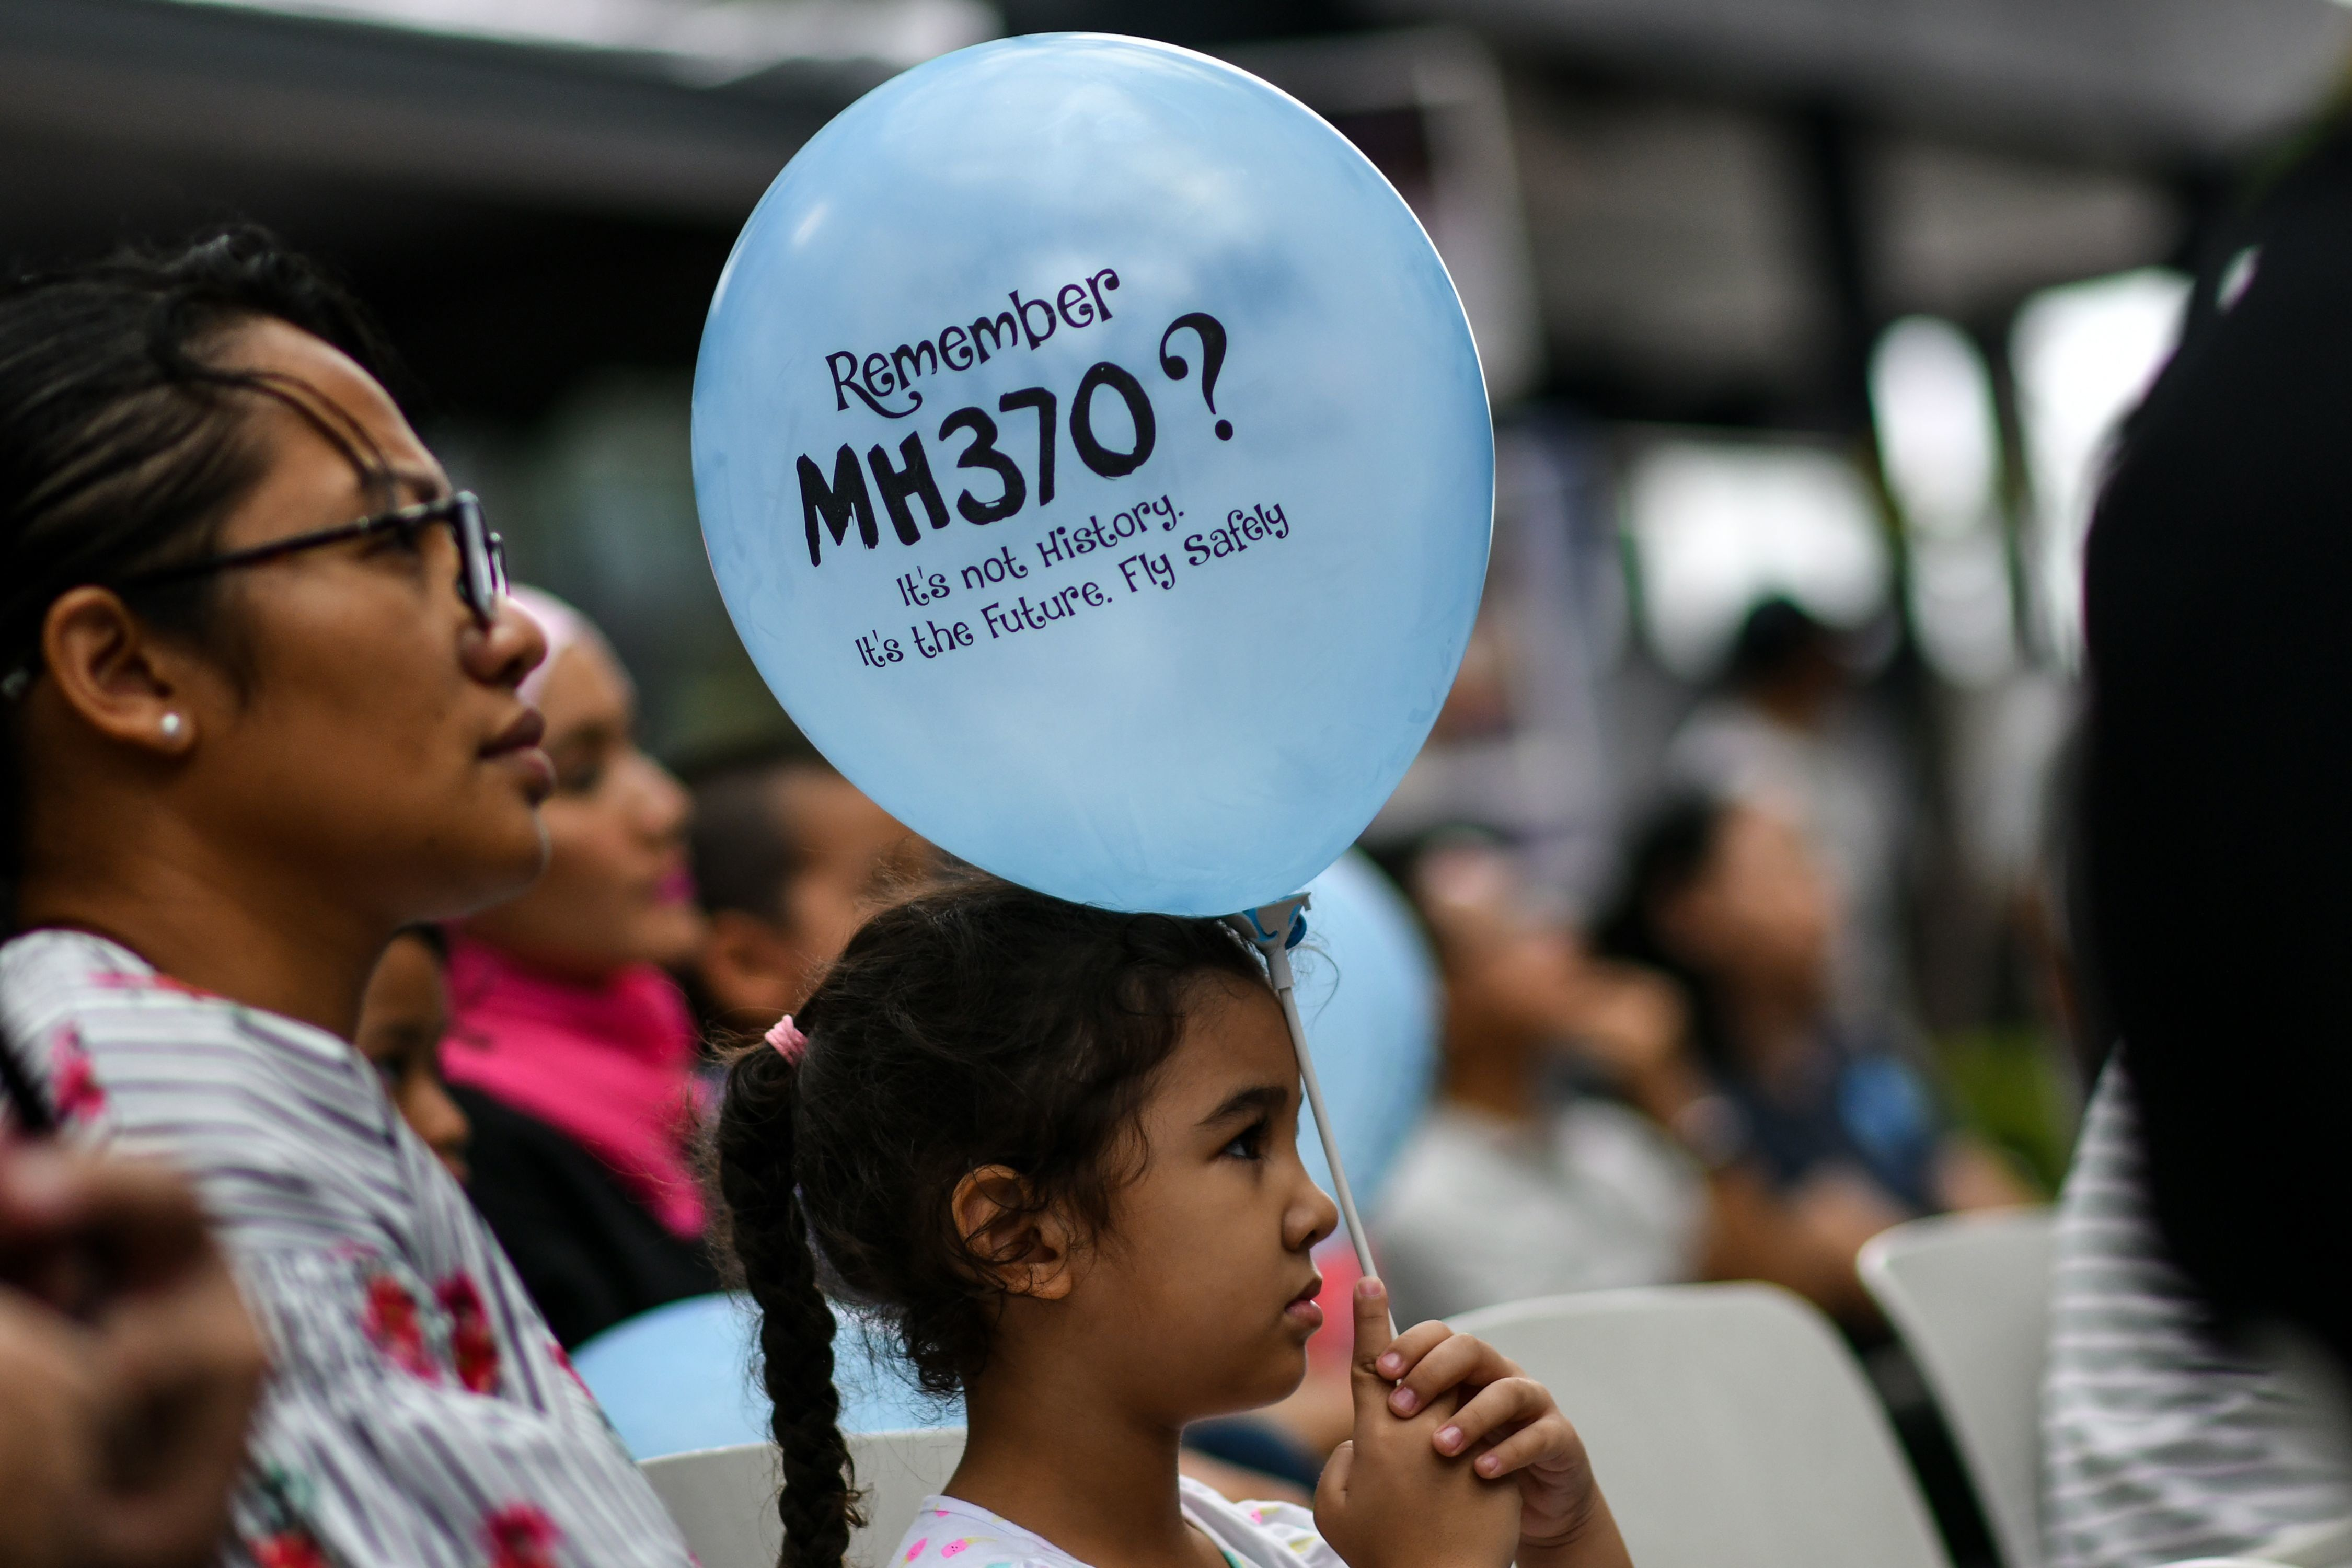 A young girl holds a balloon with a message during a memorial event for the missing Malaysia Airlines flight MH370.